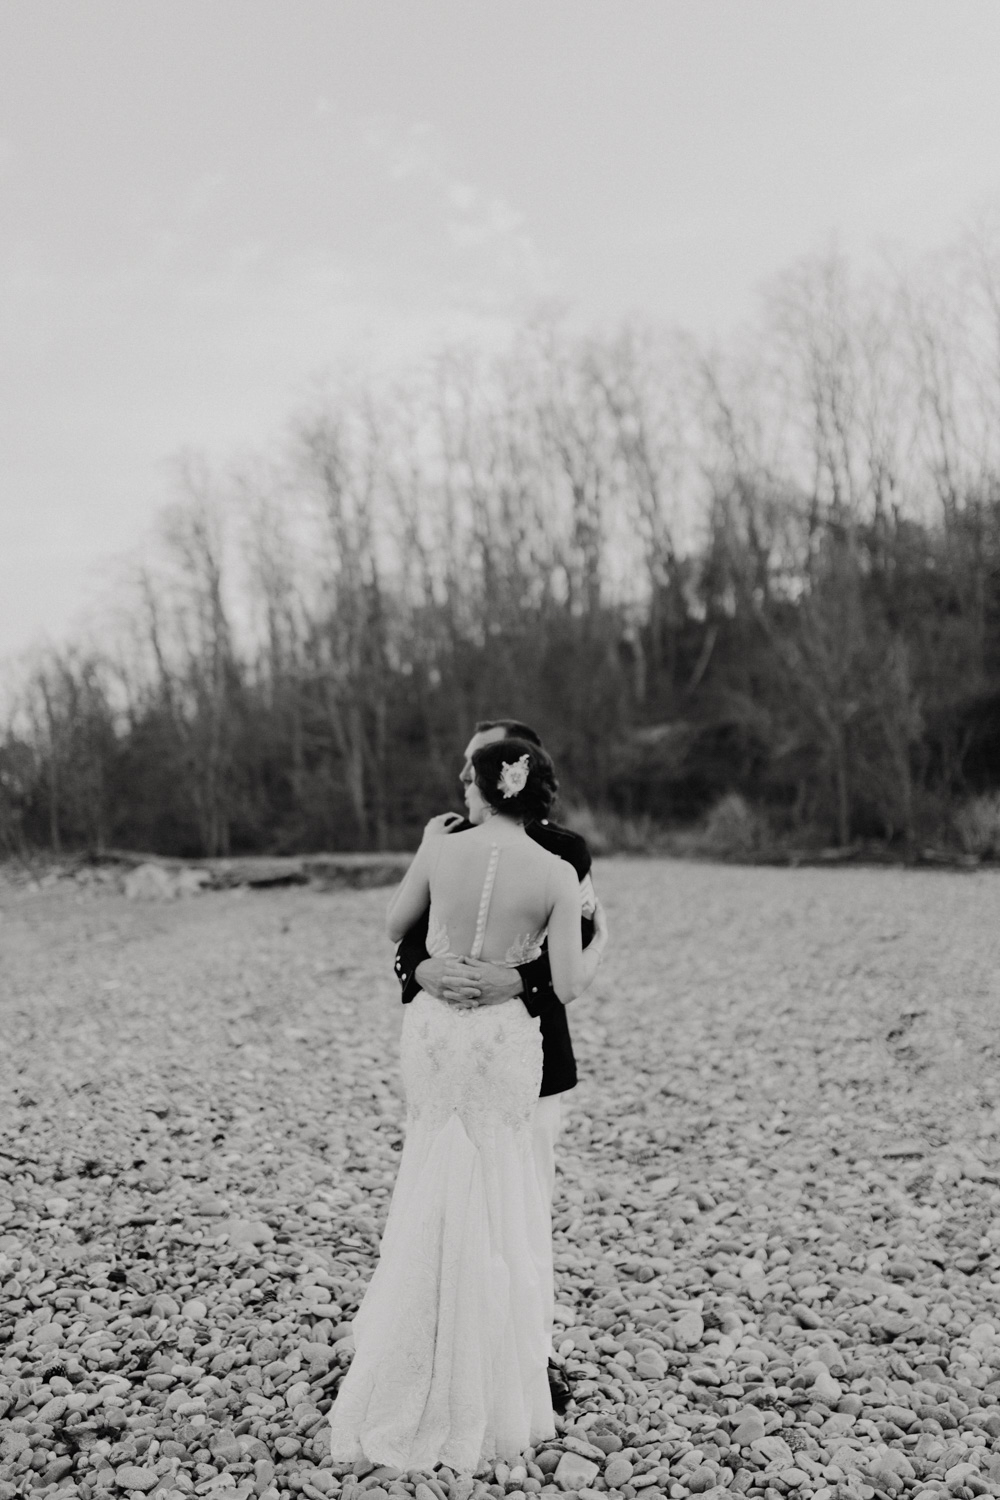 A portrait of the bride and groom on the Oceaview of Nahant's beach